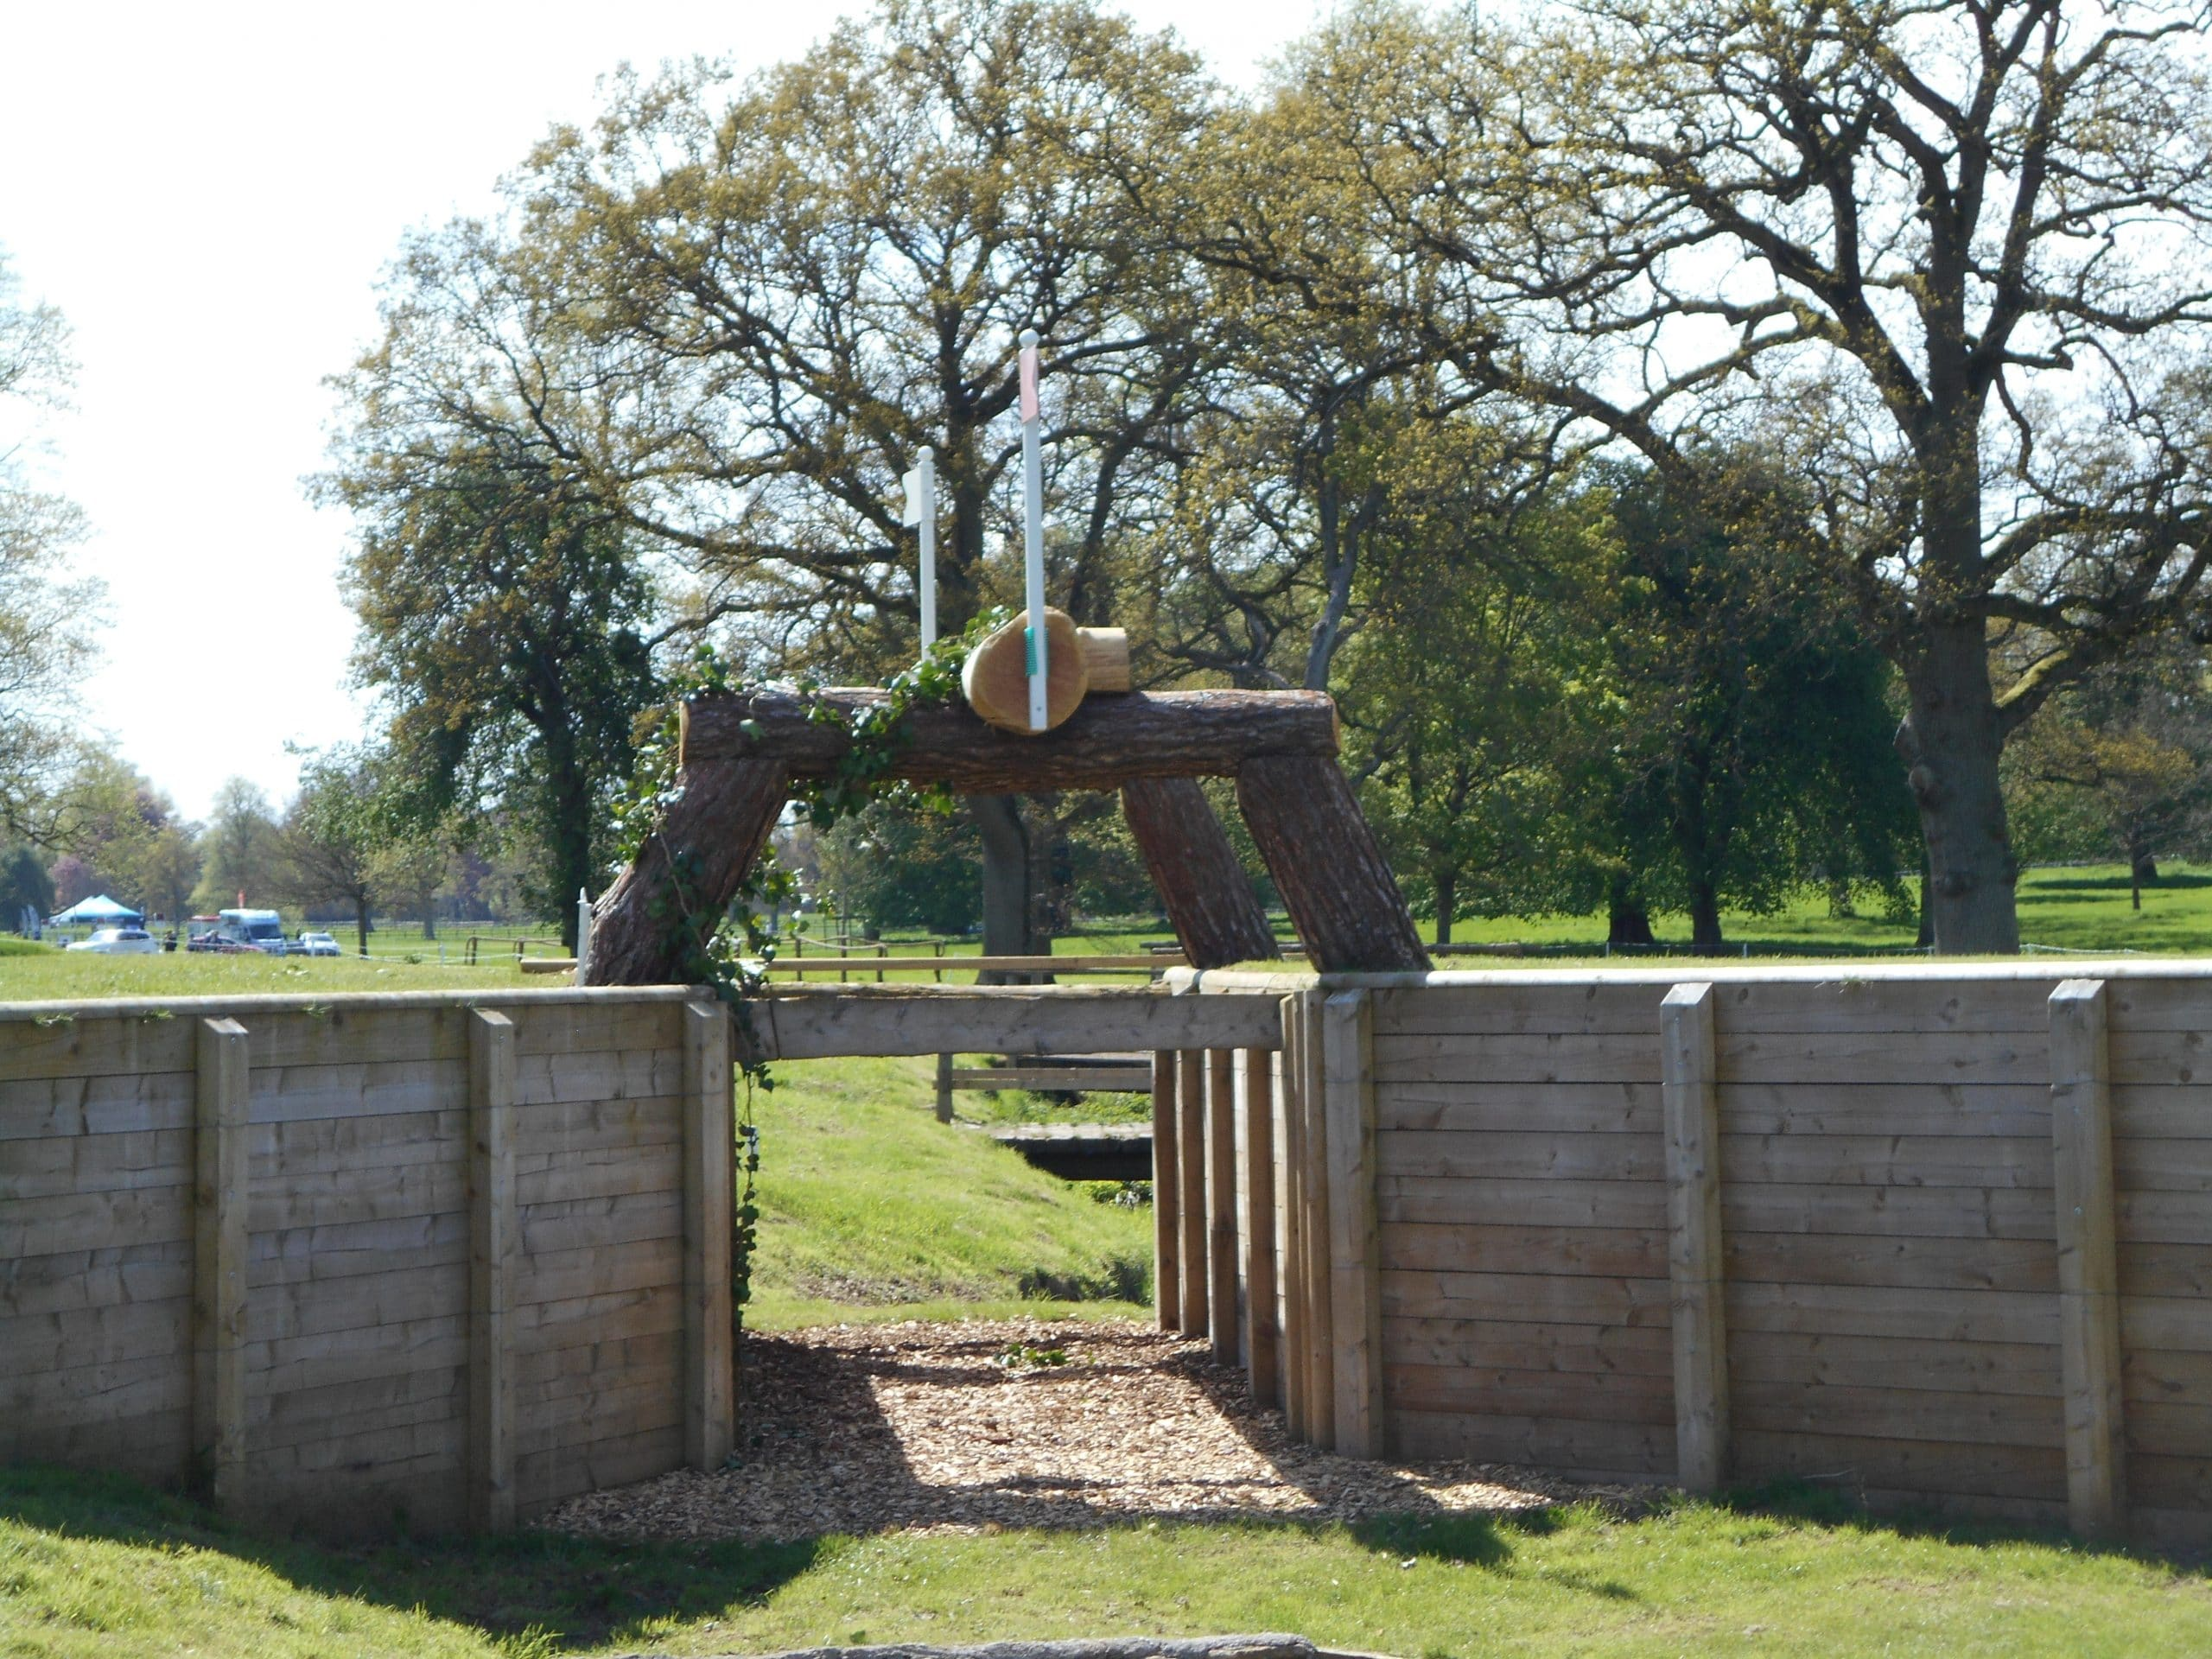 National Star Trakehner badminton